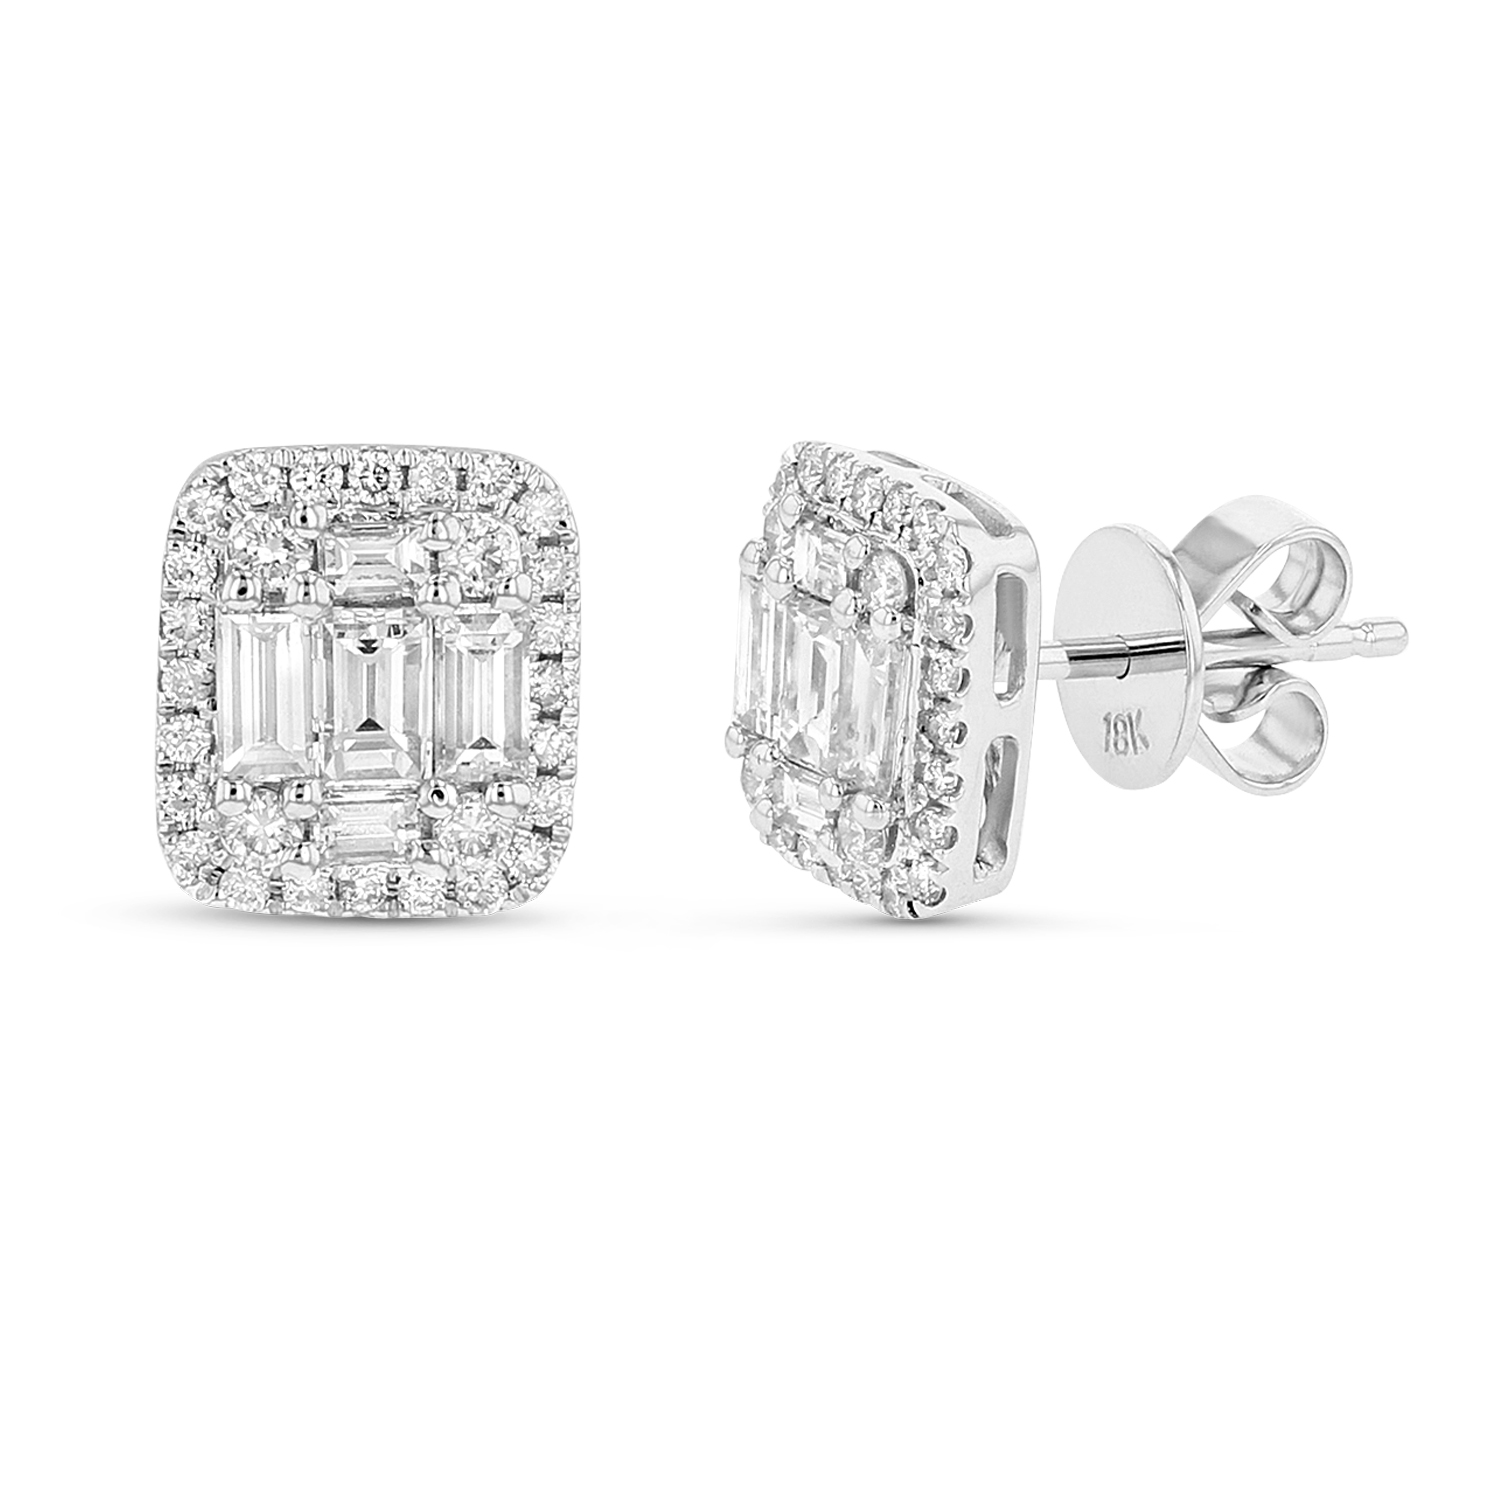 View 0.73ctw Diamond Fashion Earrings in 18k White Gold